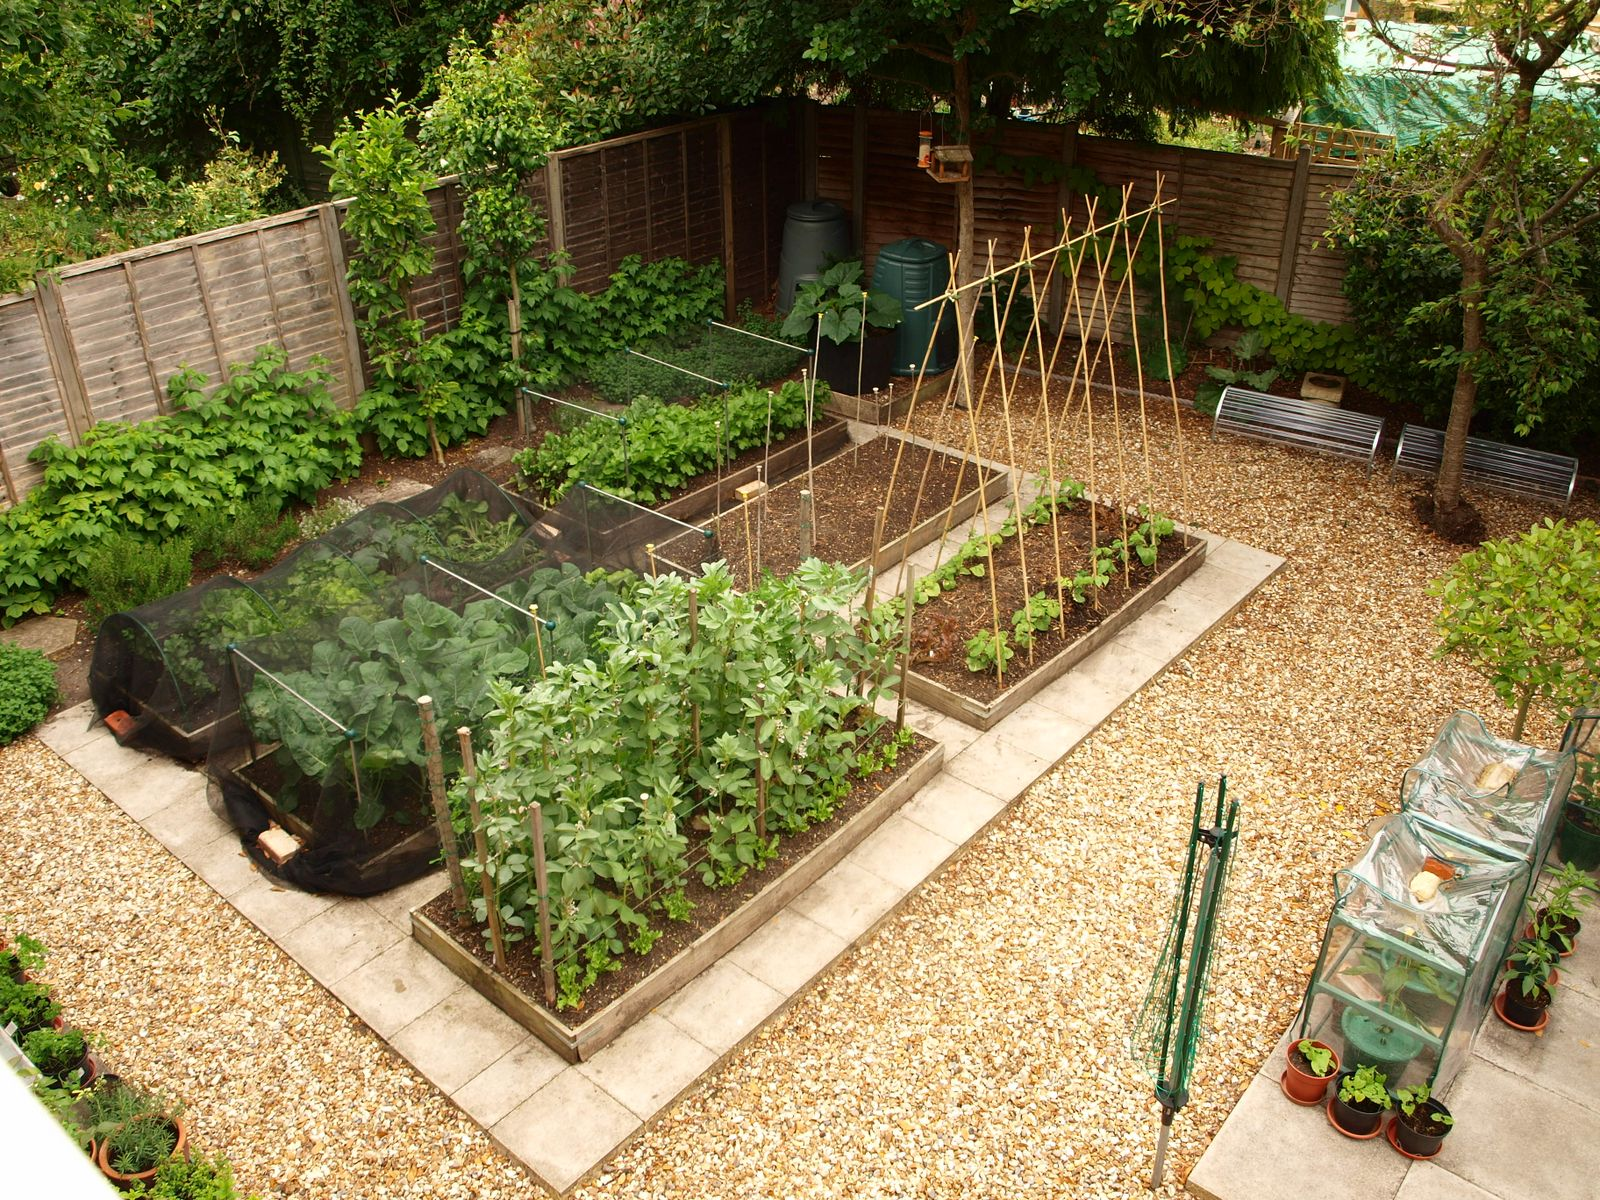 Mark 39 s veg plot allotment controversies for Vegetable patch ideas